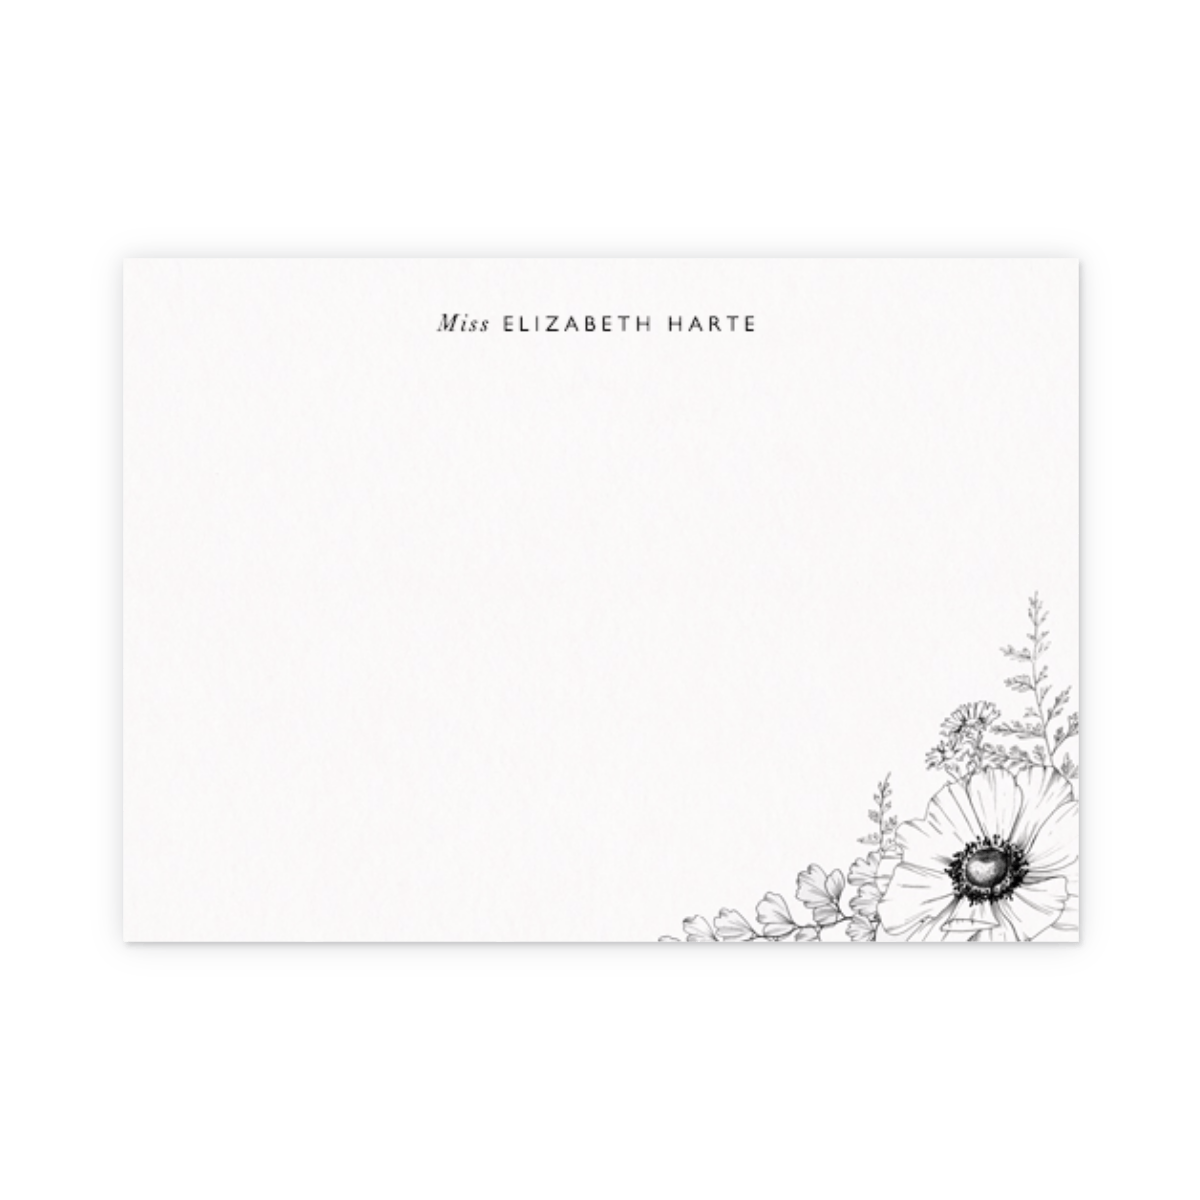 Https%3a%2f%2fwww.papier.com%2fproduct image%2f13546%2f10%2fmonochrome florals 3470 front 1478695784.png?ixlib=rb 1.1